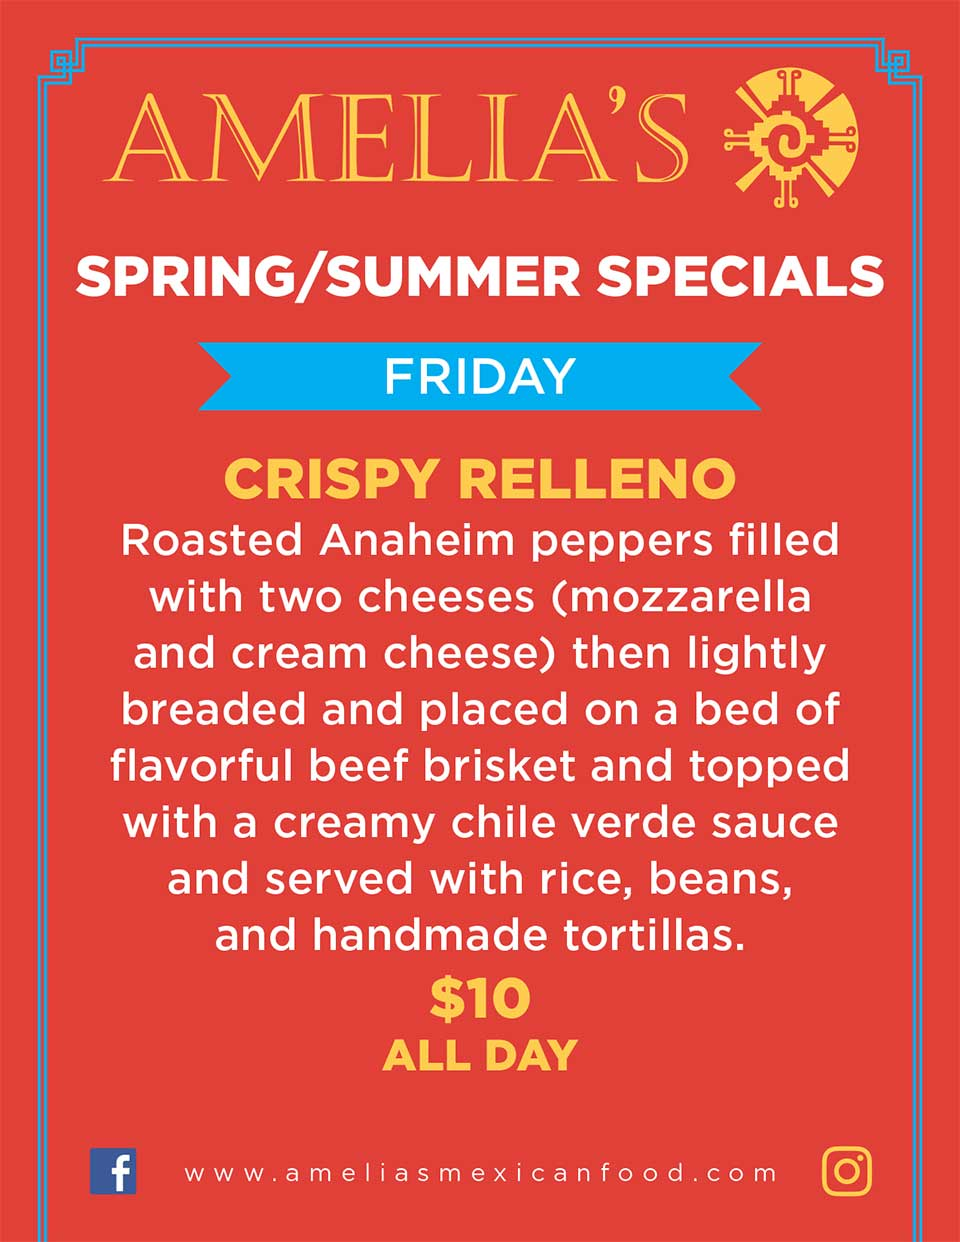 image of Amelia's Spring & summer specials for Friday